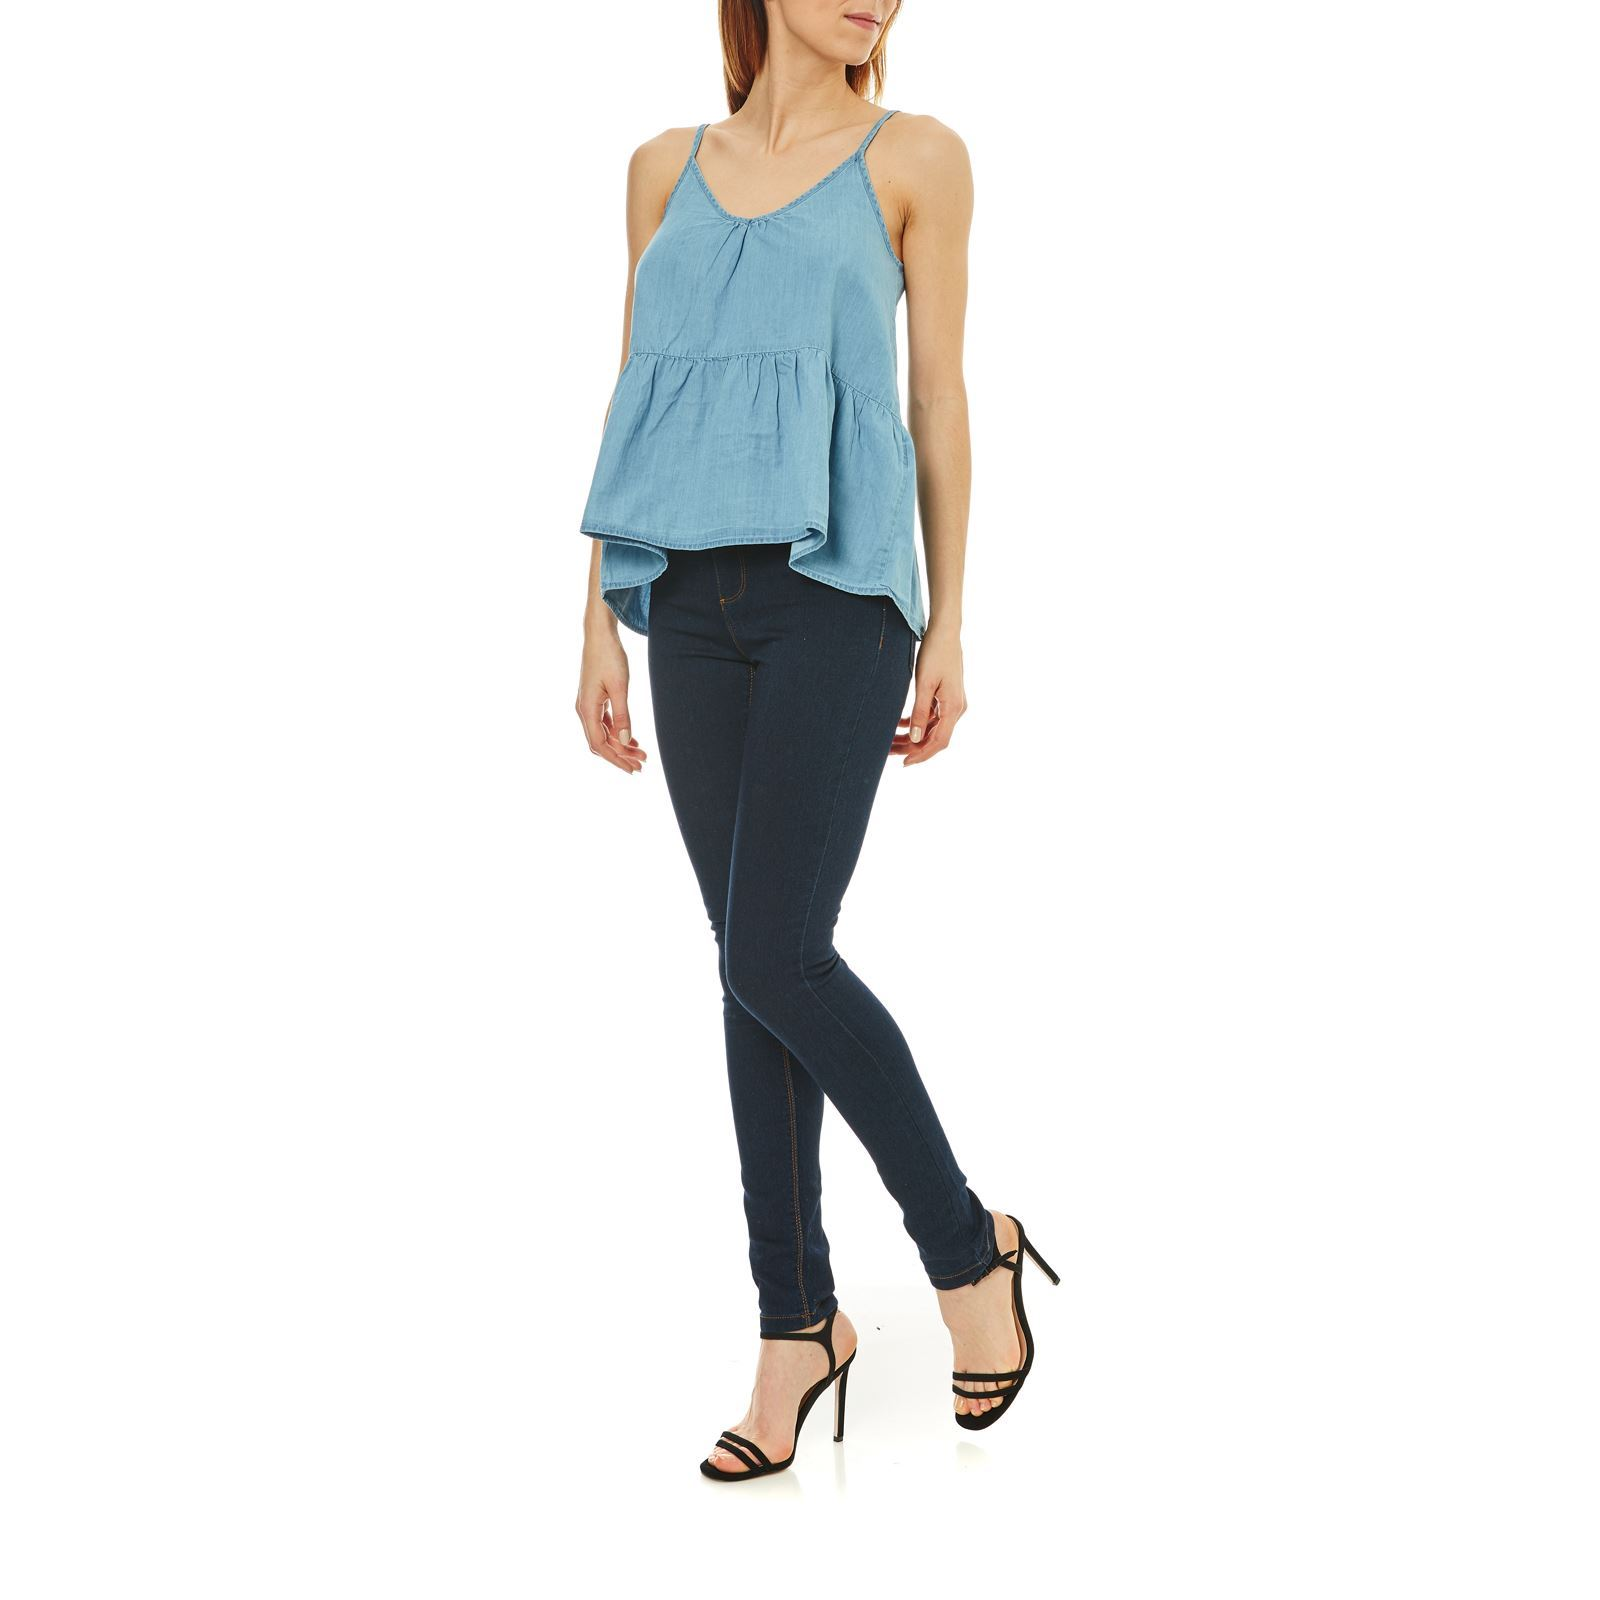 JUDY - TOP - DENIM AZUL Vende bien Vero Moda - Tops DOPXANT